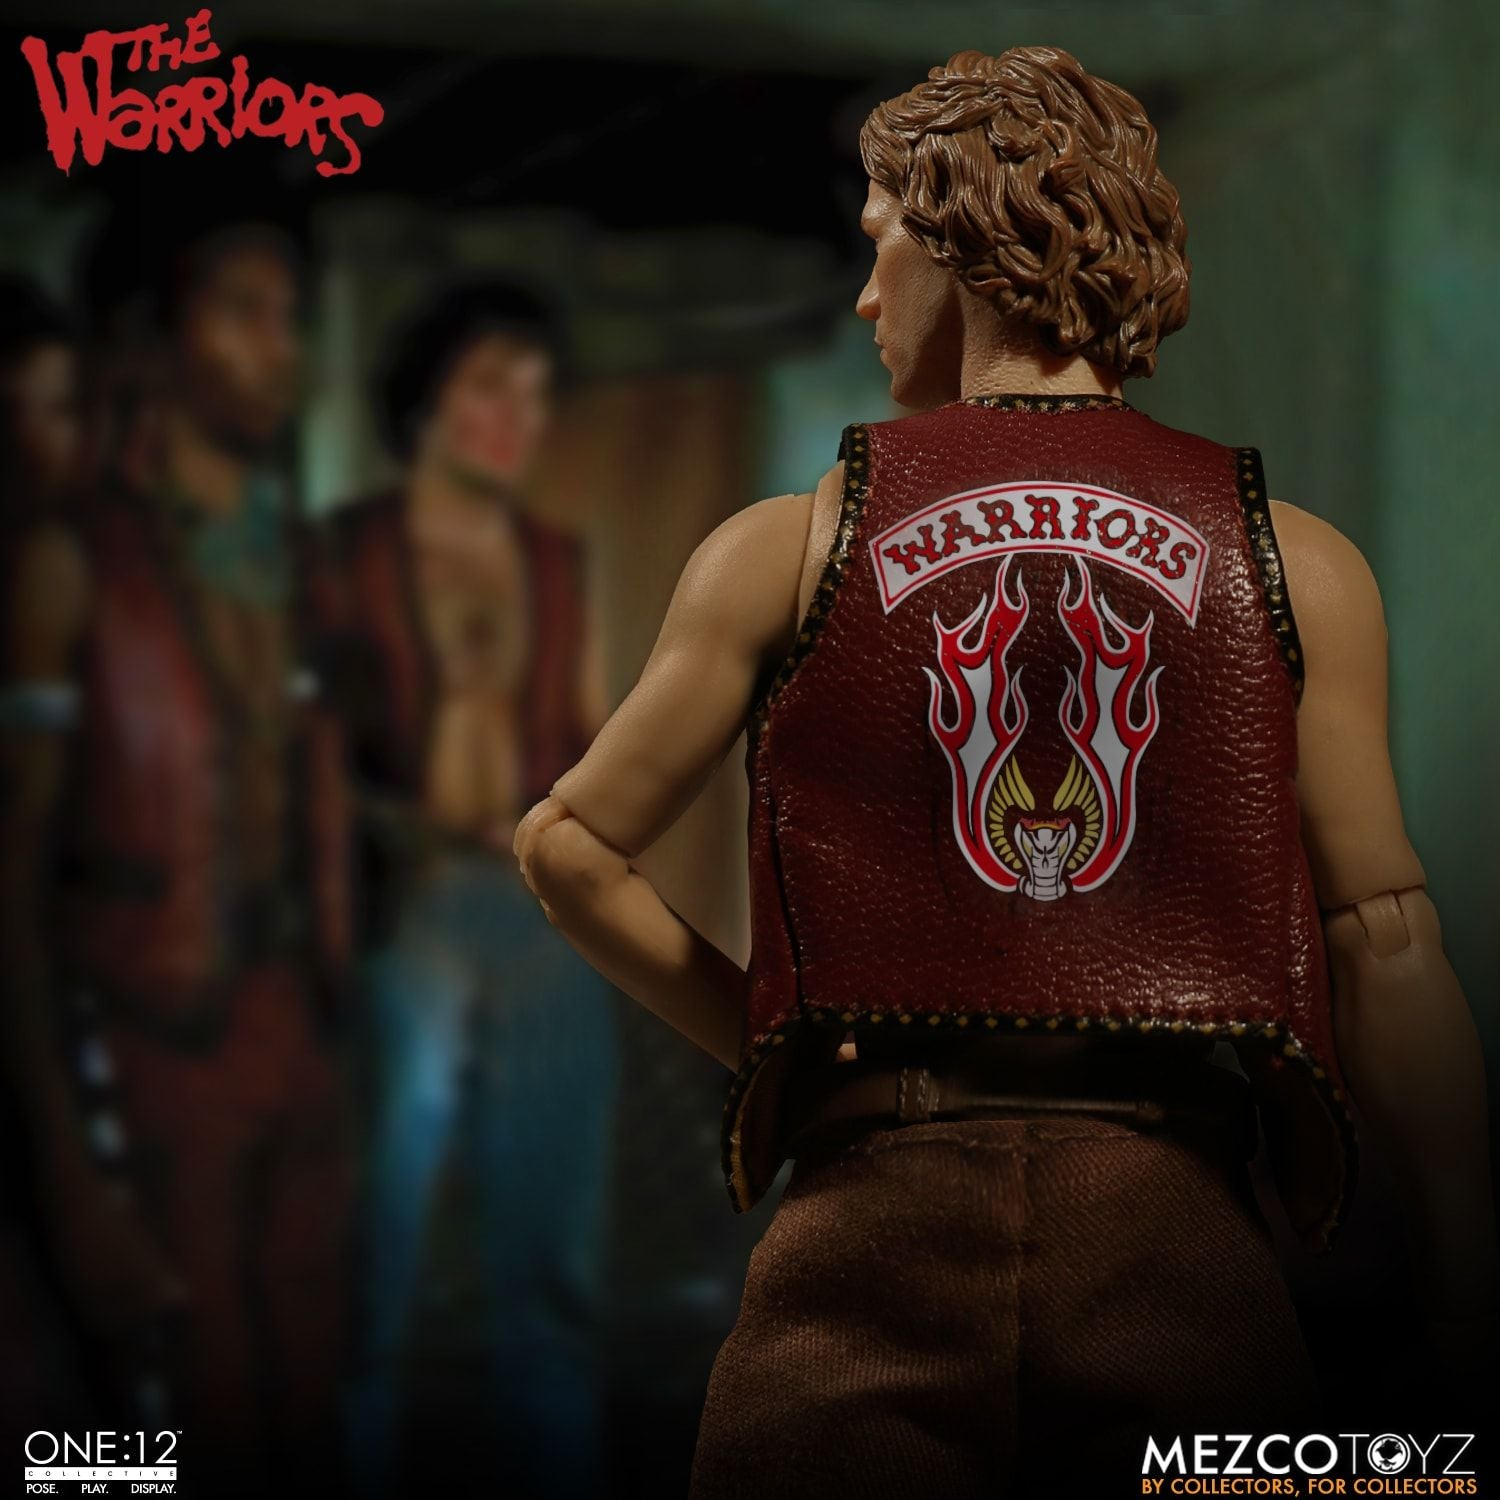 Mezco Warriors One:12 Collective Action Figure Set wit Collectible Tin Case - Collectors Row Inc.